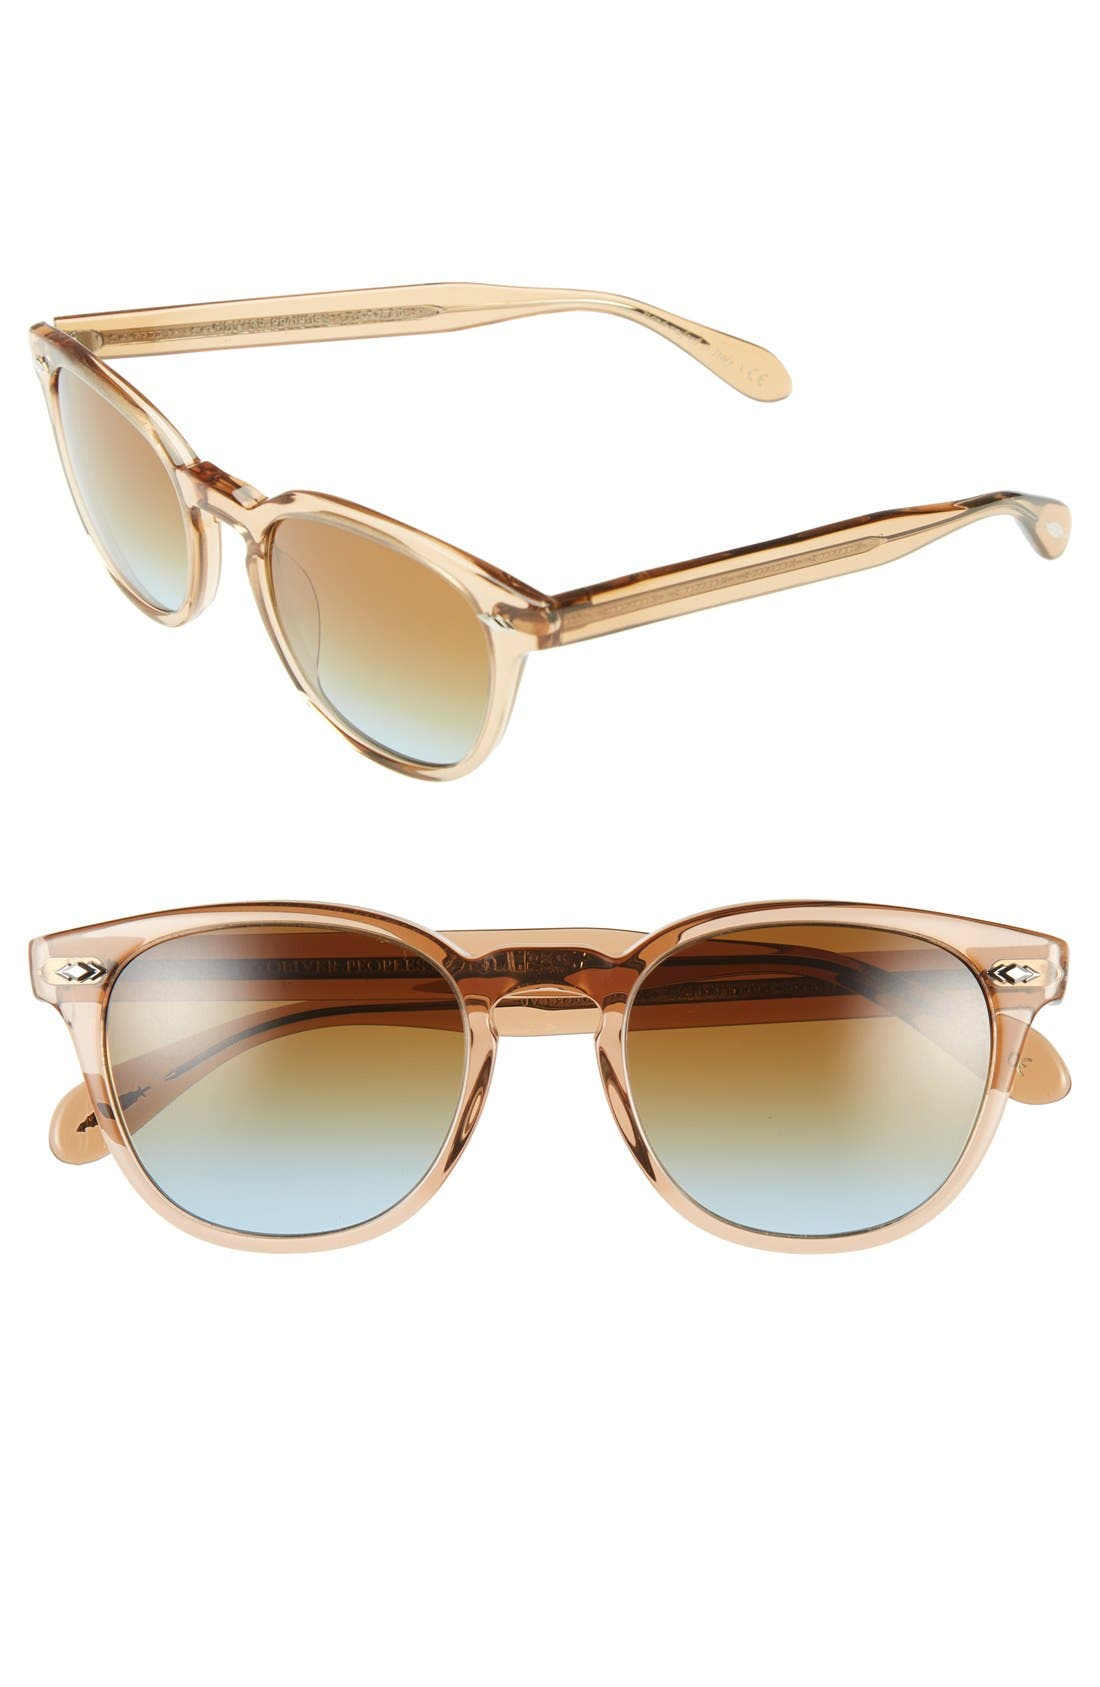 Alternate Image 1 Selected - Oliver Peoples 'Sheldrake Plus' 52mm Retro Sunglasses